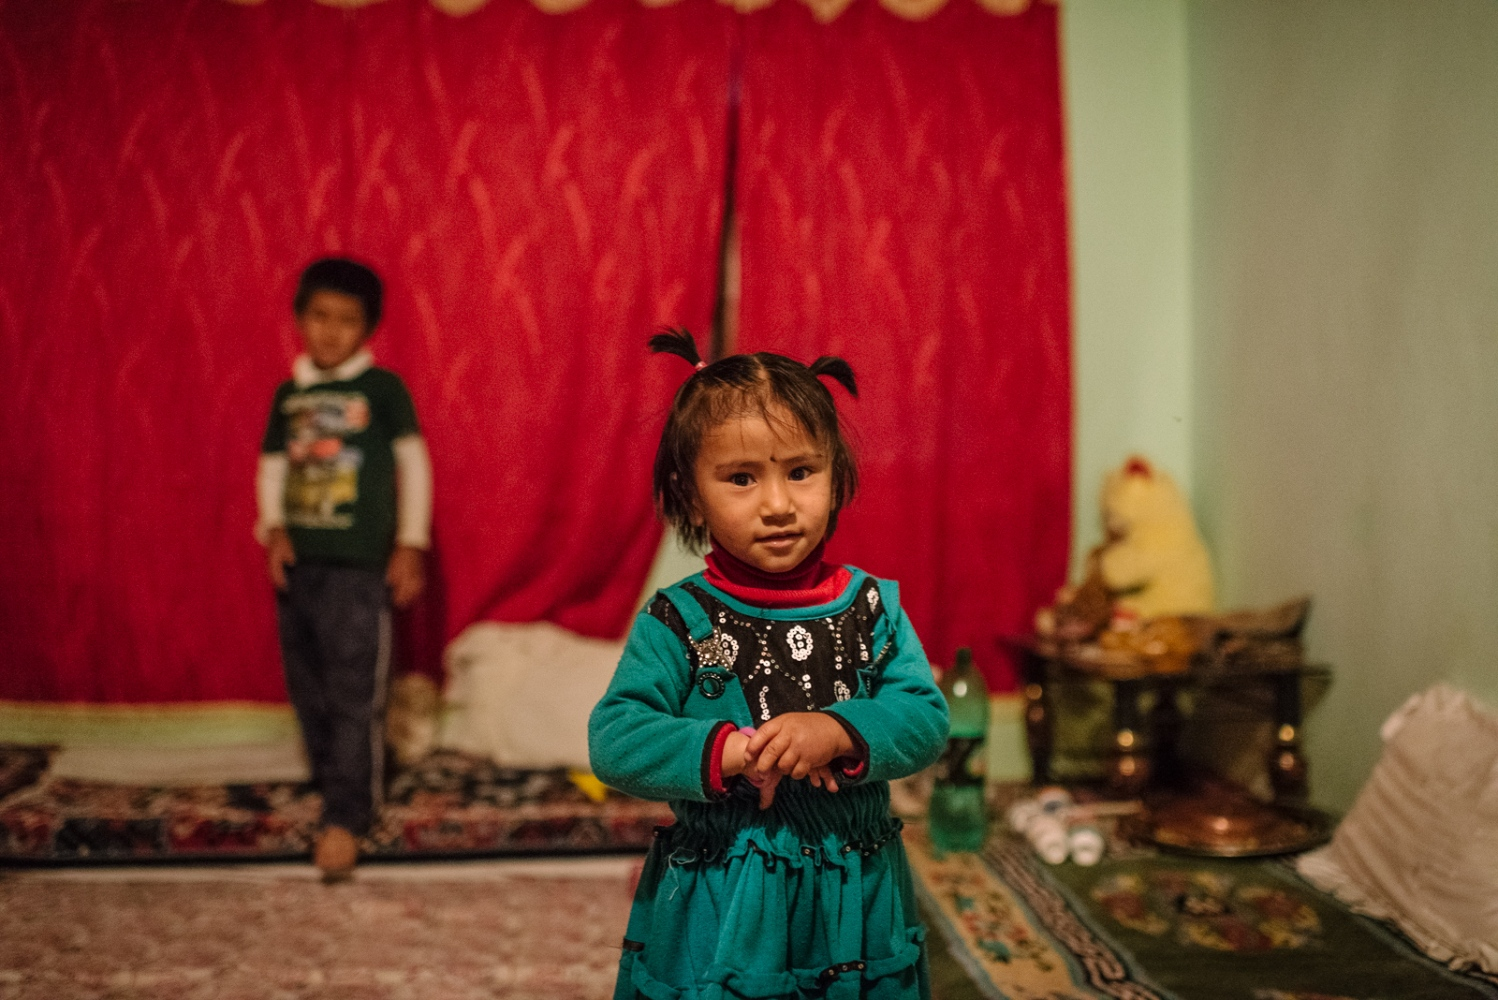 Young Muslim children play at their home during a family reunion celebrating 'Iftar' near Choglomsar, Ladakh.